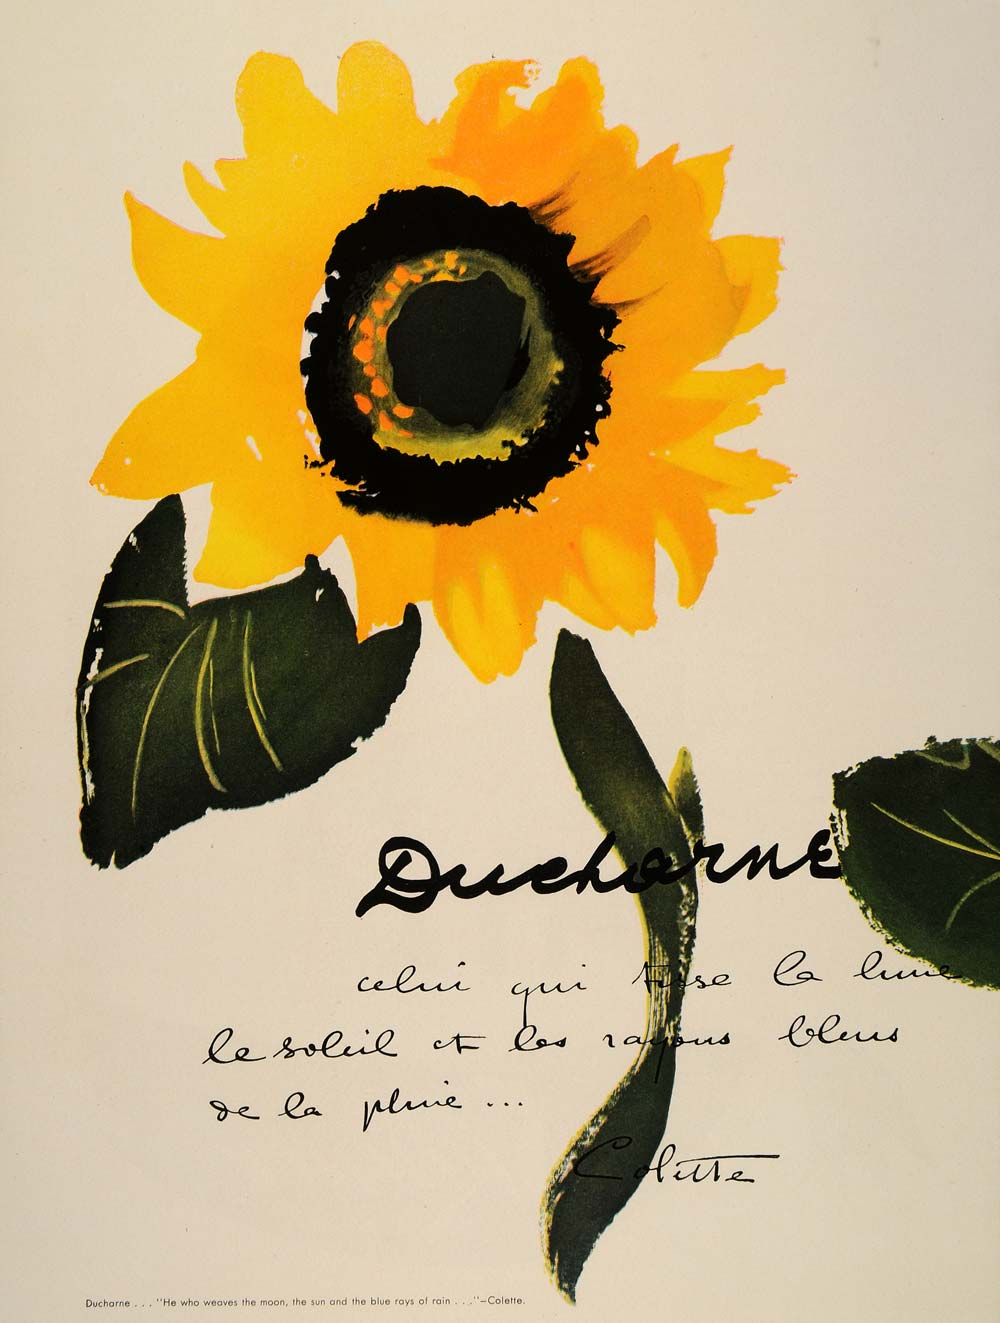 "1948 Ad Ducharne Fabric Sunflower Colette Quotation ""Celui qui tisse la lune.."""